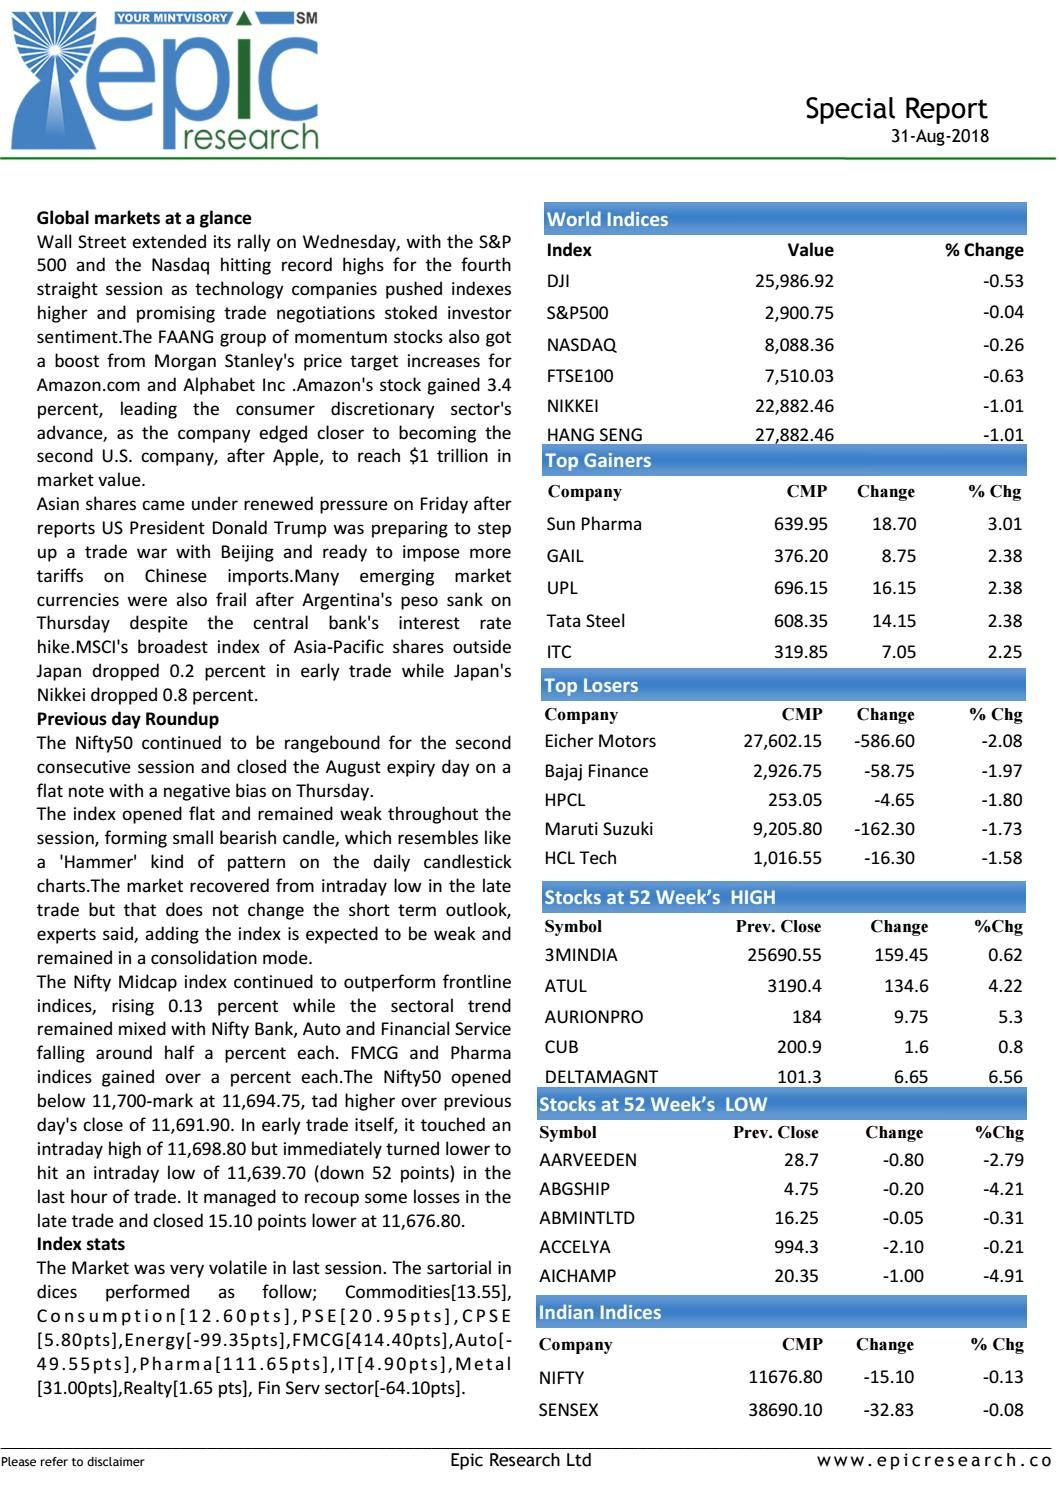 Special Report 31 August 2018 Epic Research Investing In Shares